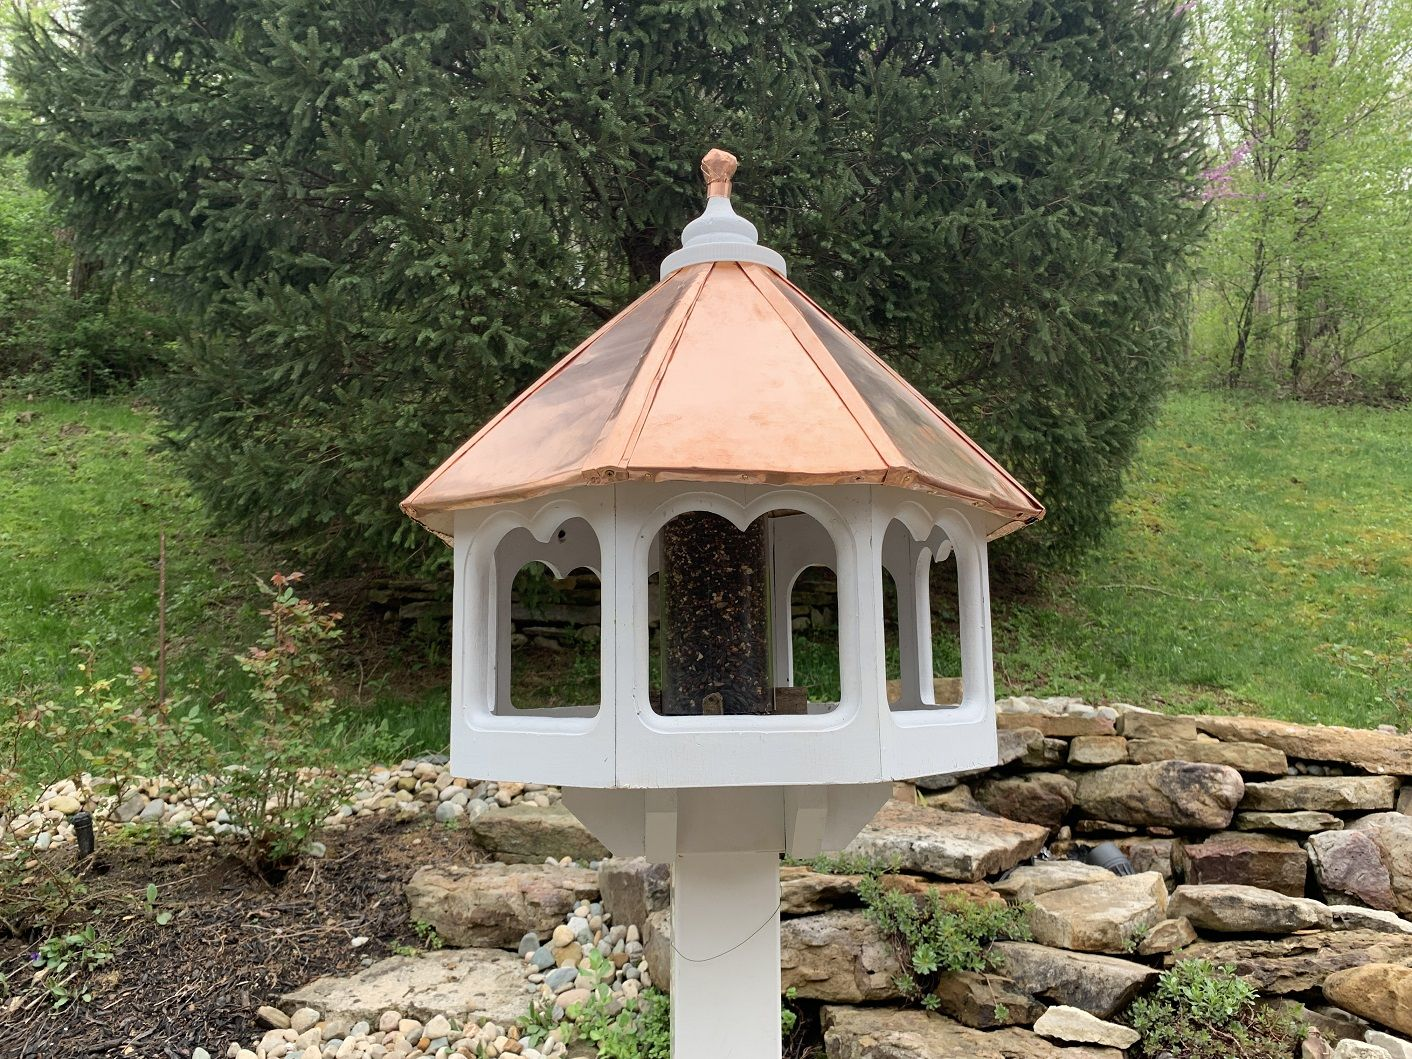 This Birdhouse Was Restored With A New Copper Roof Using Our 30 Gauge Copper Sheeting Bird Houses Copper Roof Copper Birdhouses